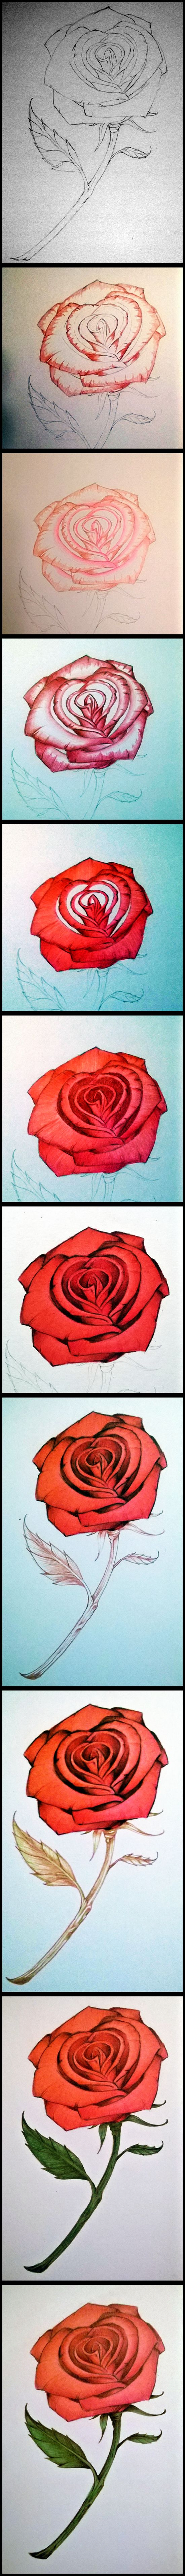 Drawn red rose pencil step With on Pencils to Flowers